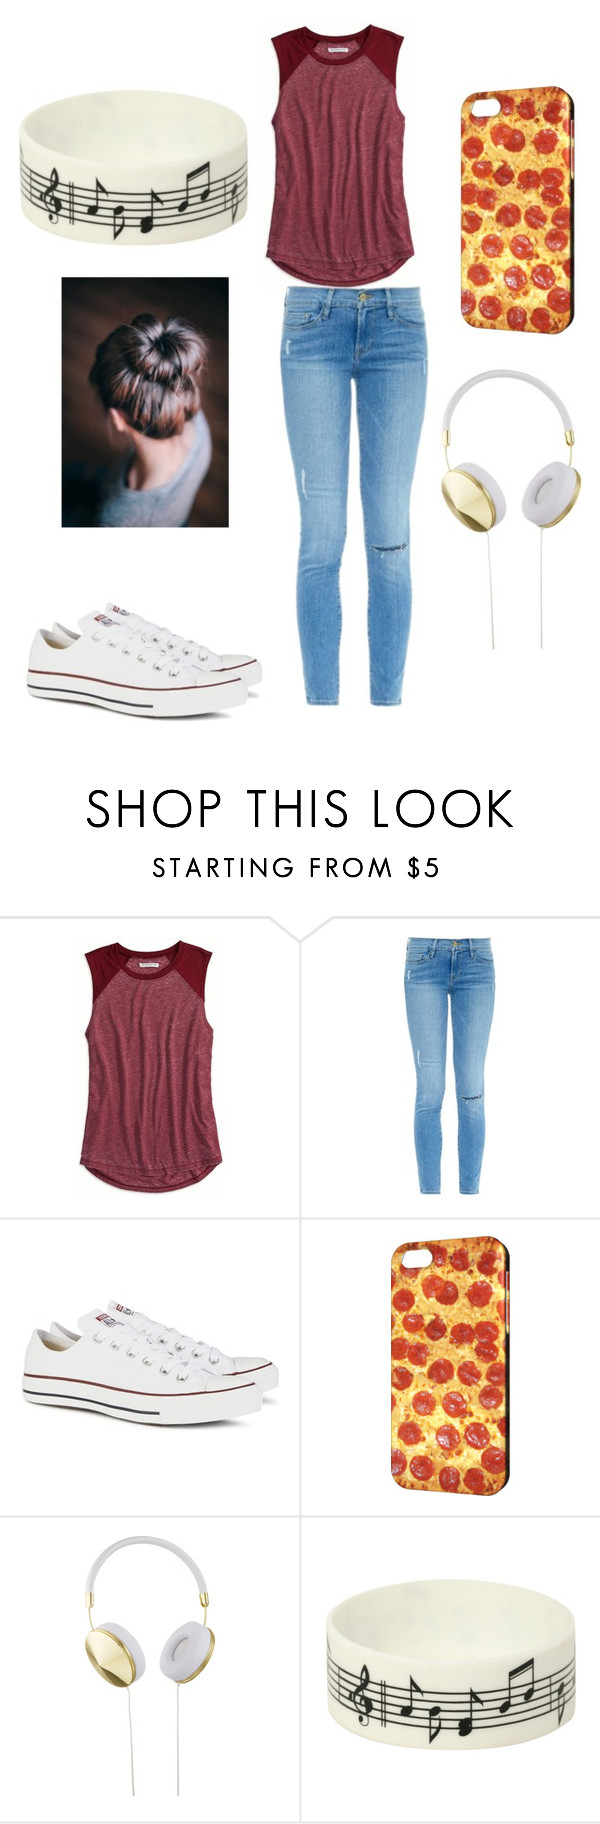 """casual lazy day"" by kimberly58227 ❤ liked on Polyvore featuring American Eagle Outfitters, Frame Denim, Converse, Frends, Music Notes, women's clothing, women, female, woman and misses"